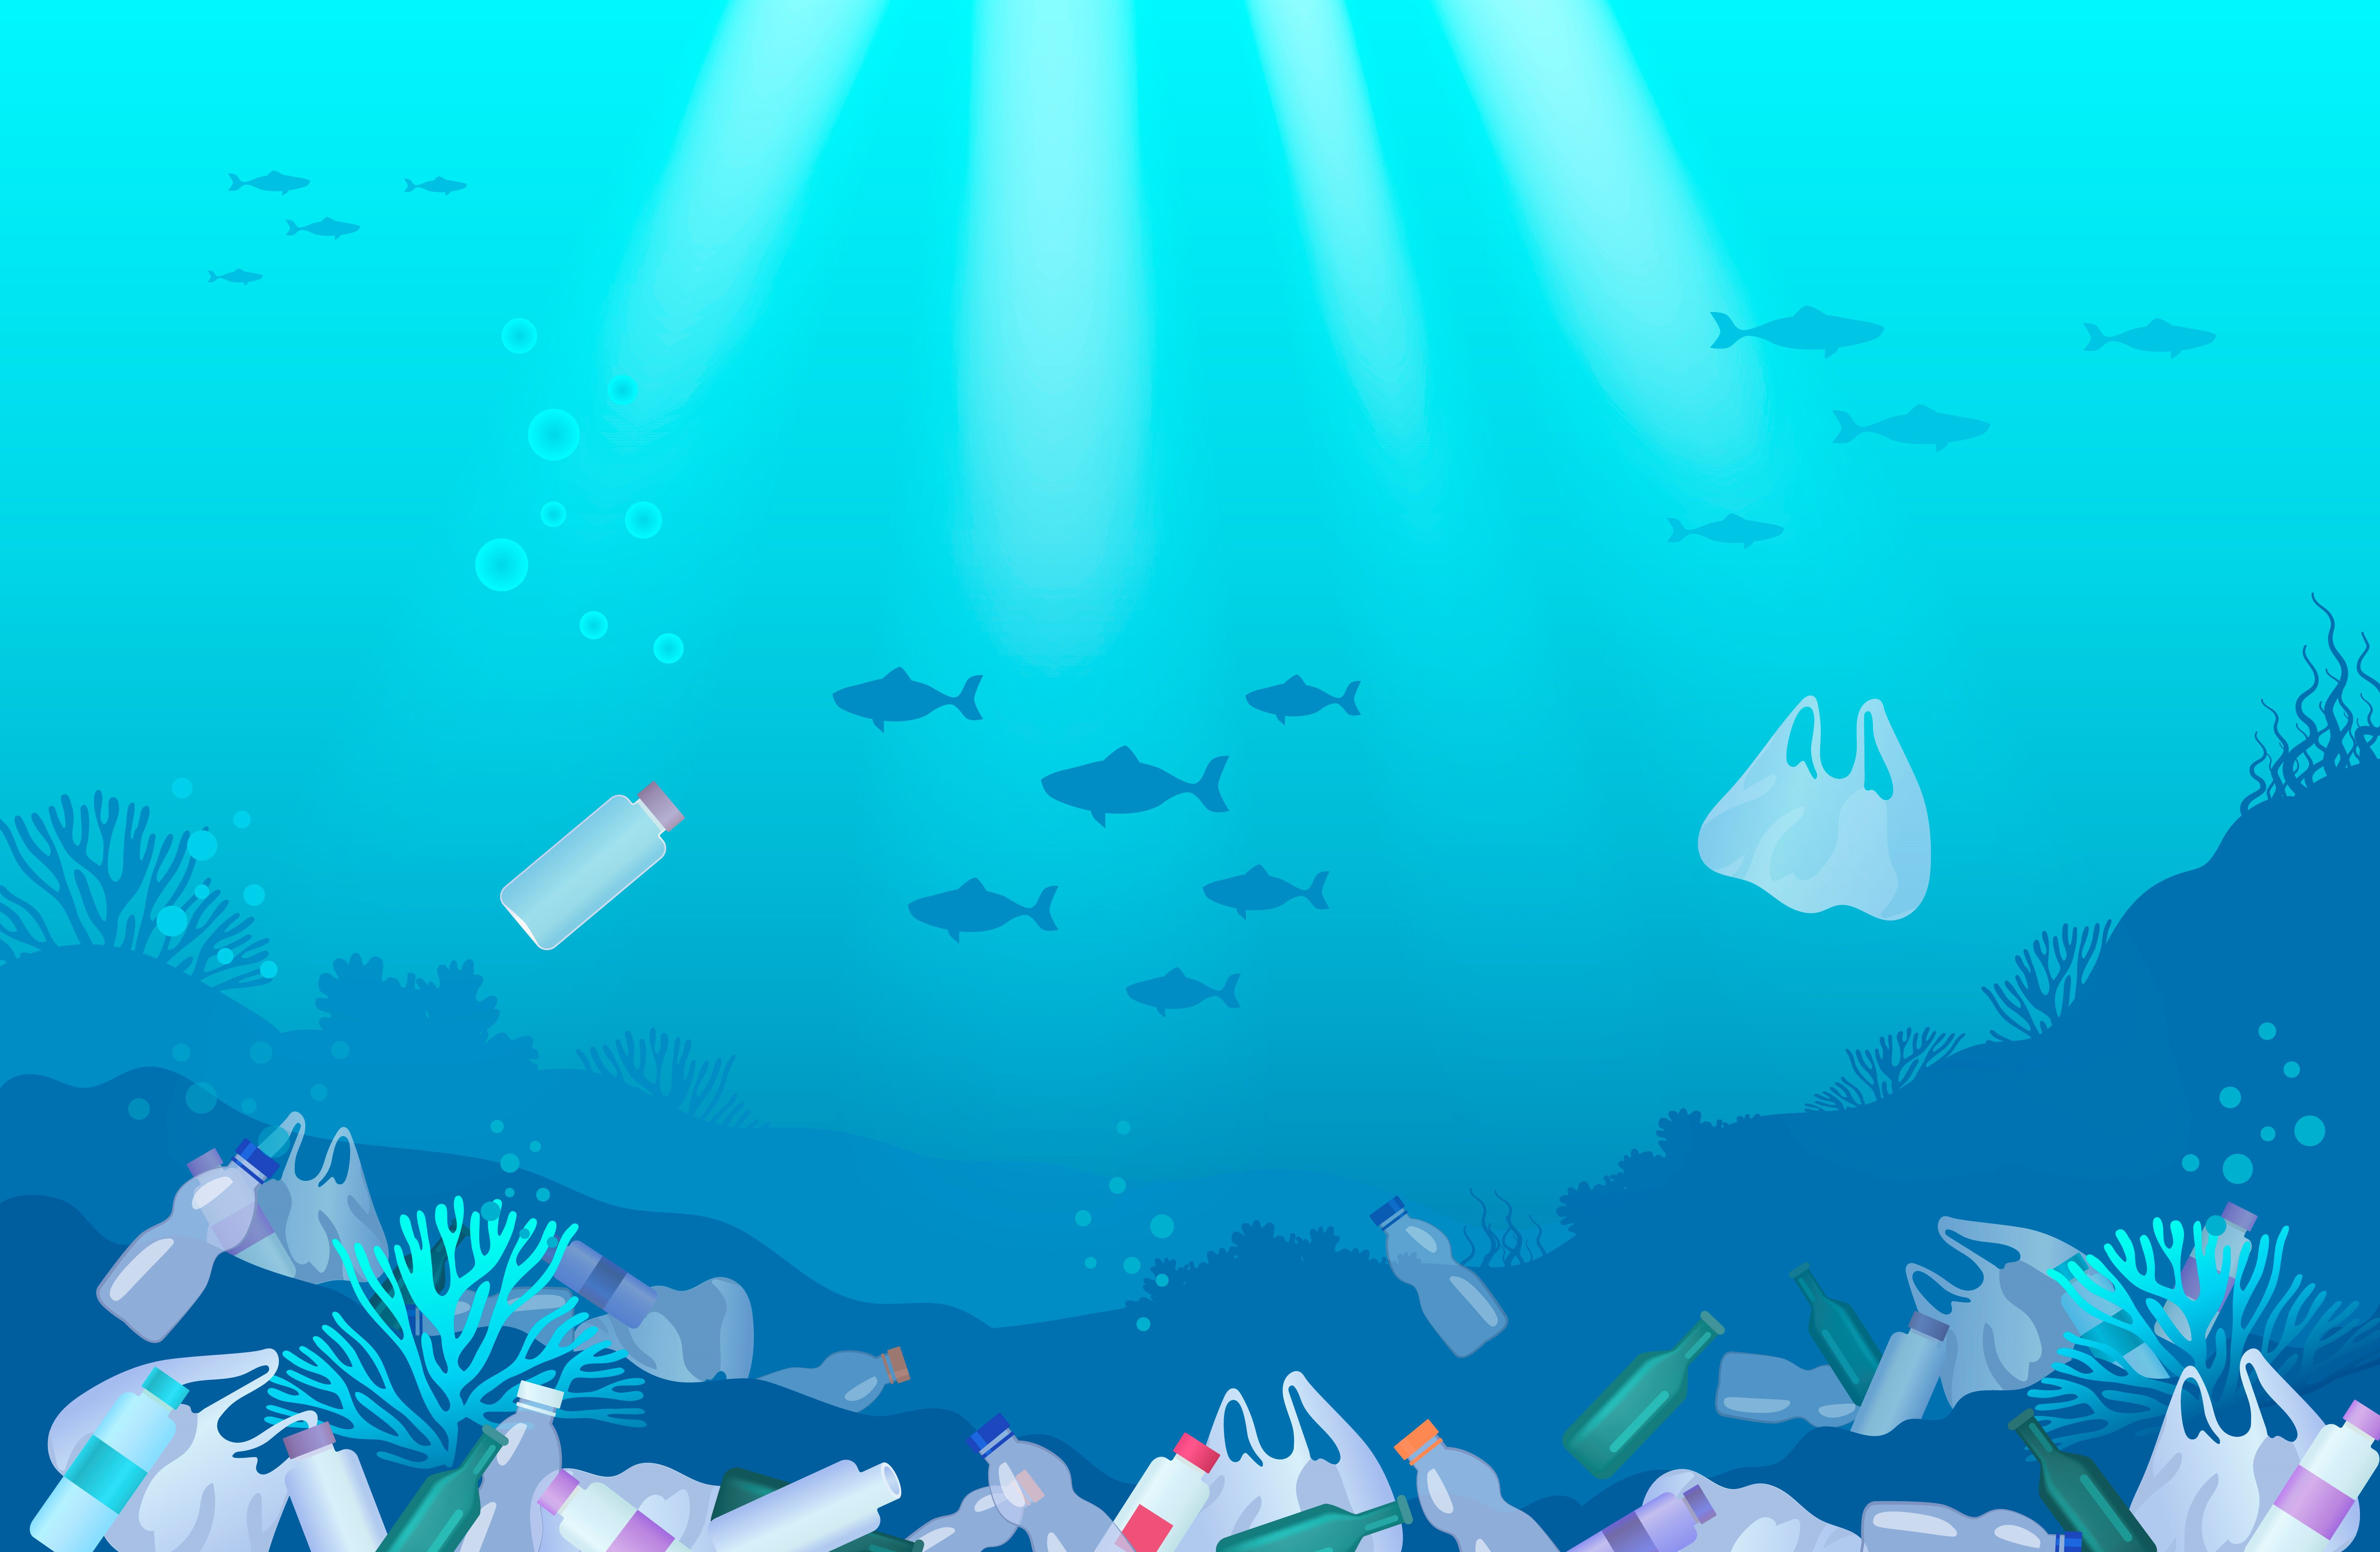 Geography Plastic Pollution Level 1 Activity For Kids